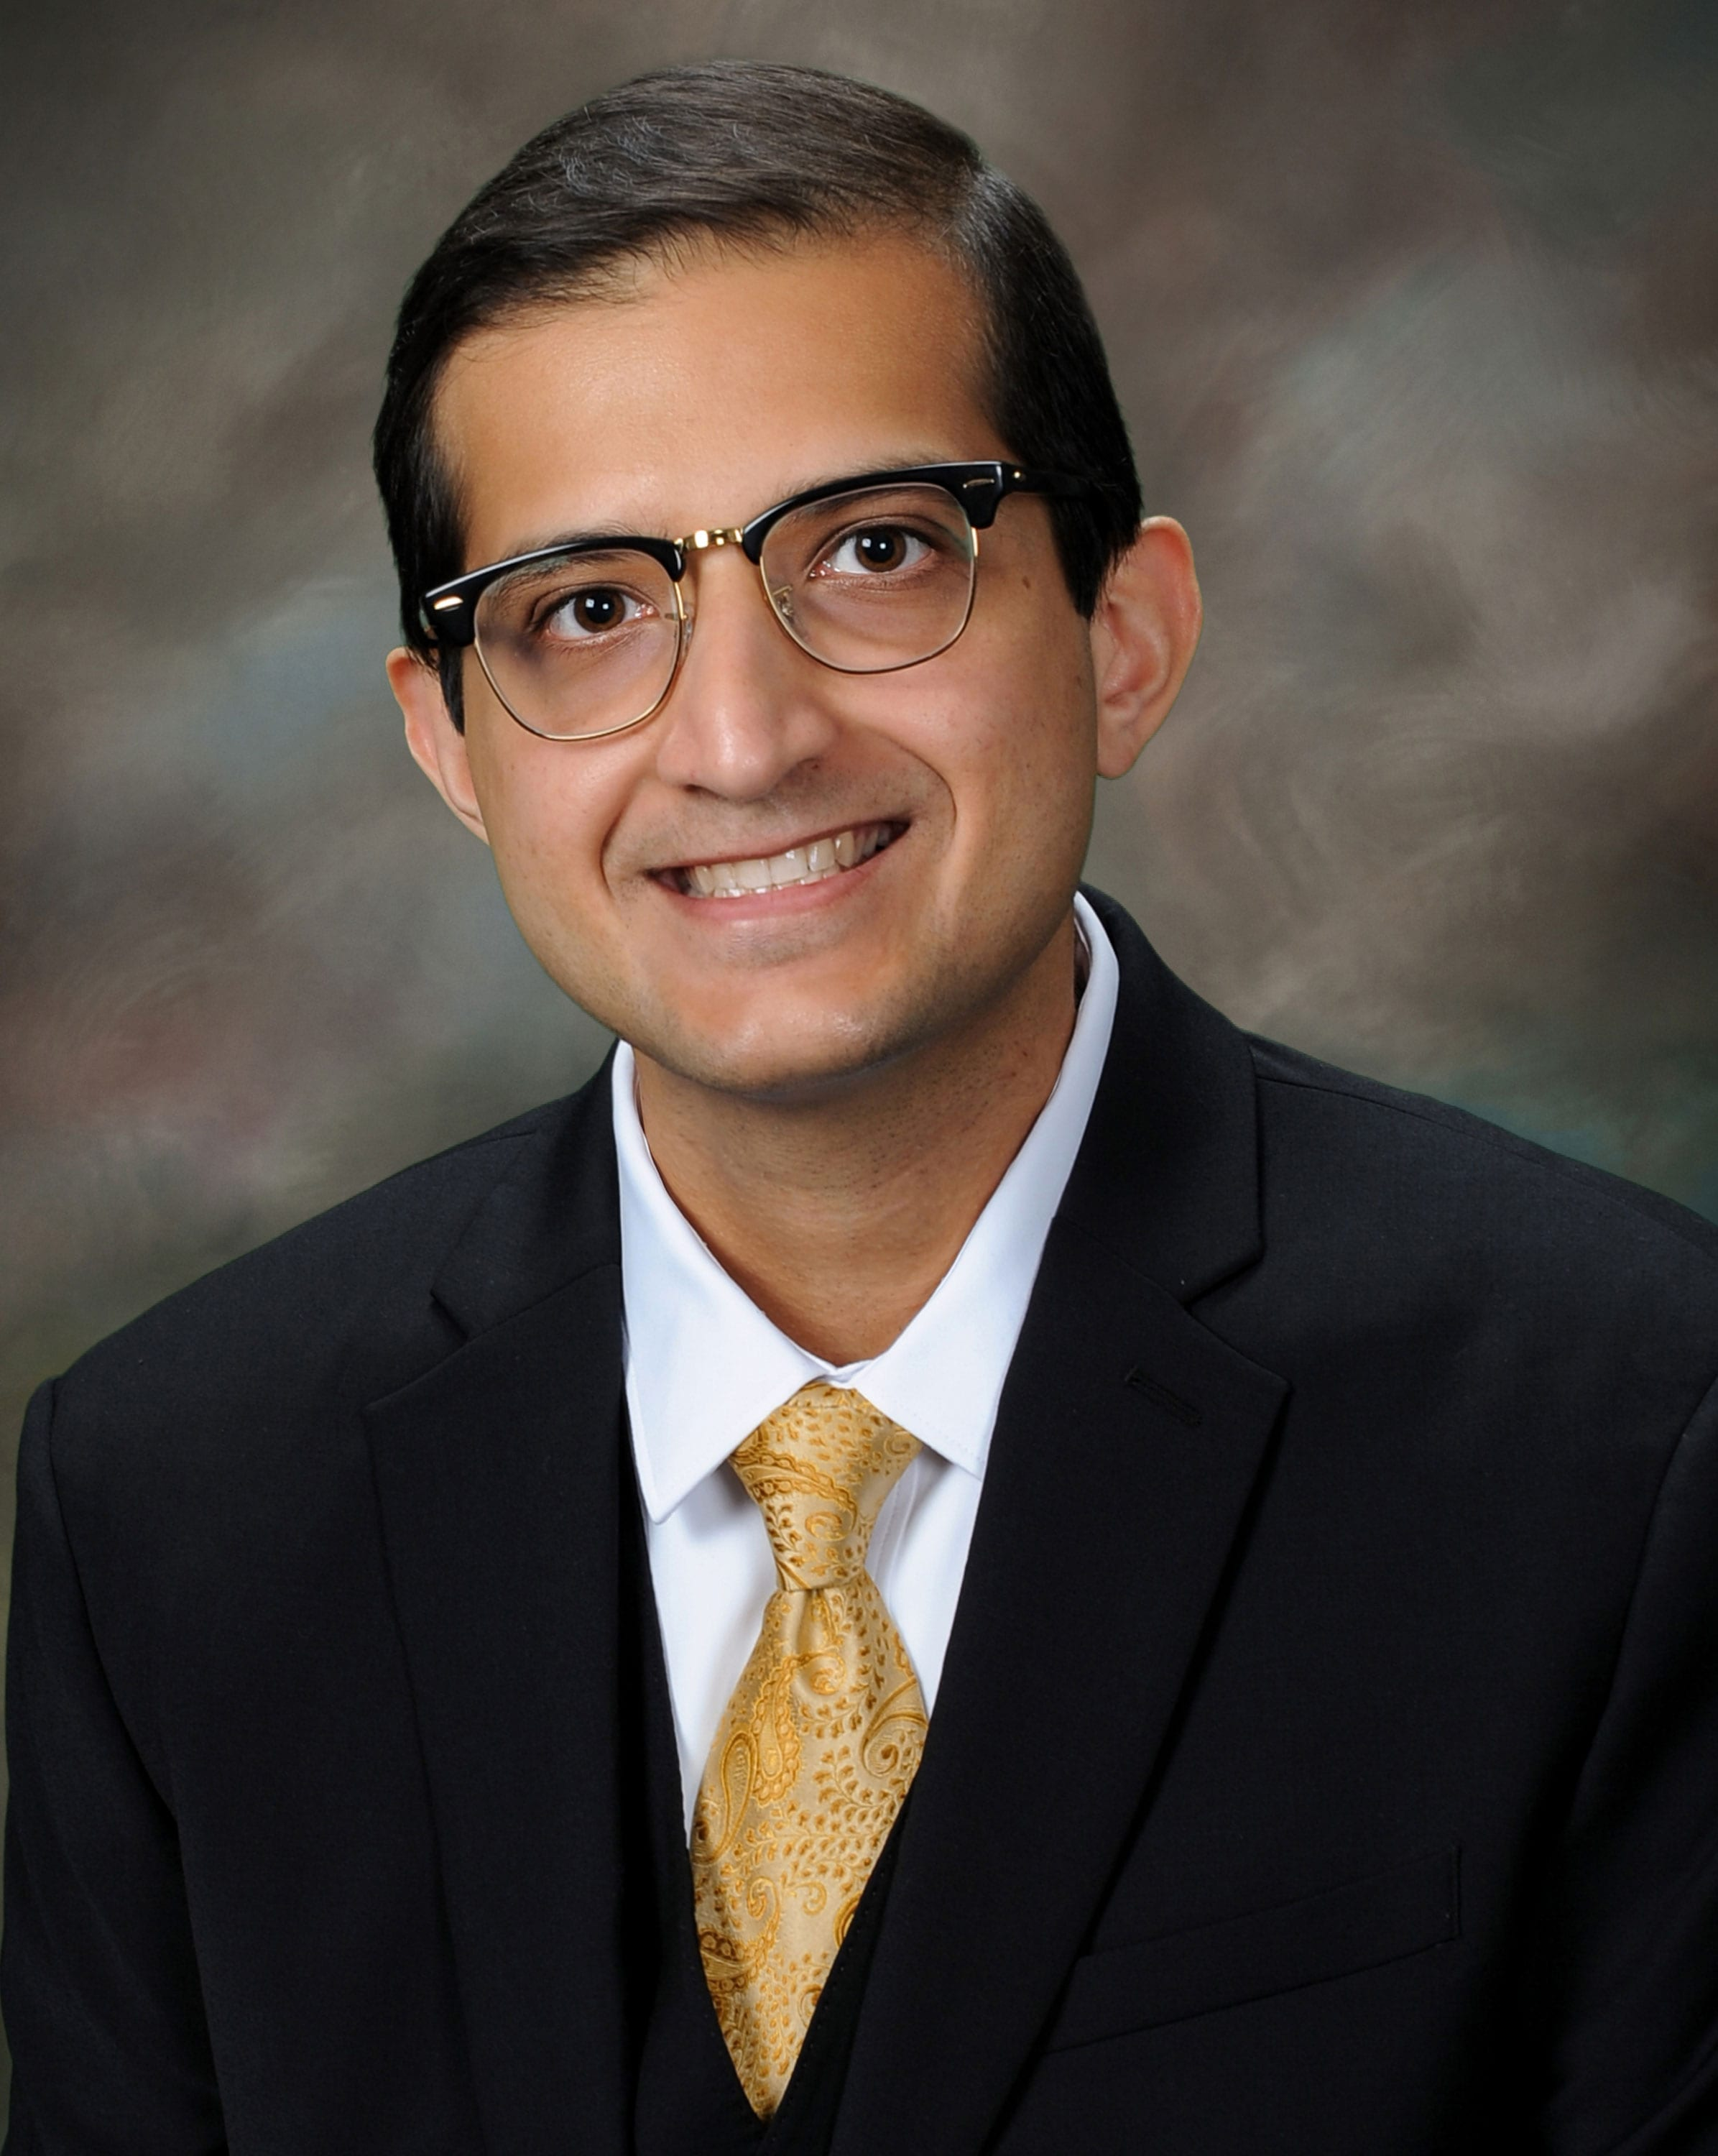 Dr. Rashid Orthopaedic Spine Surgeon